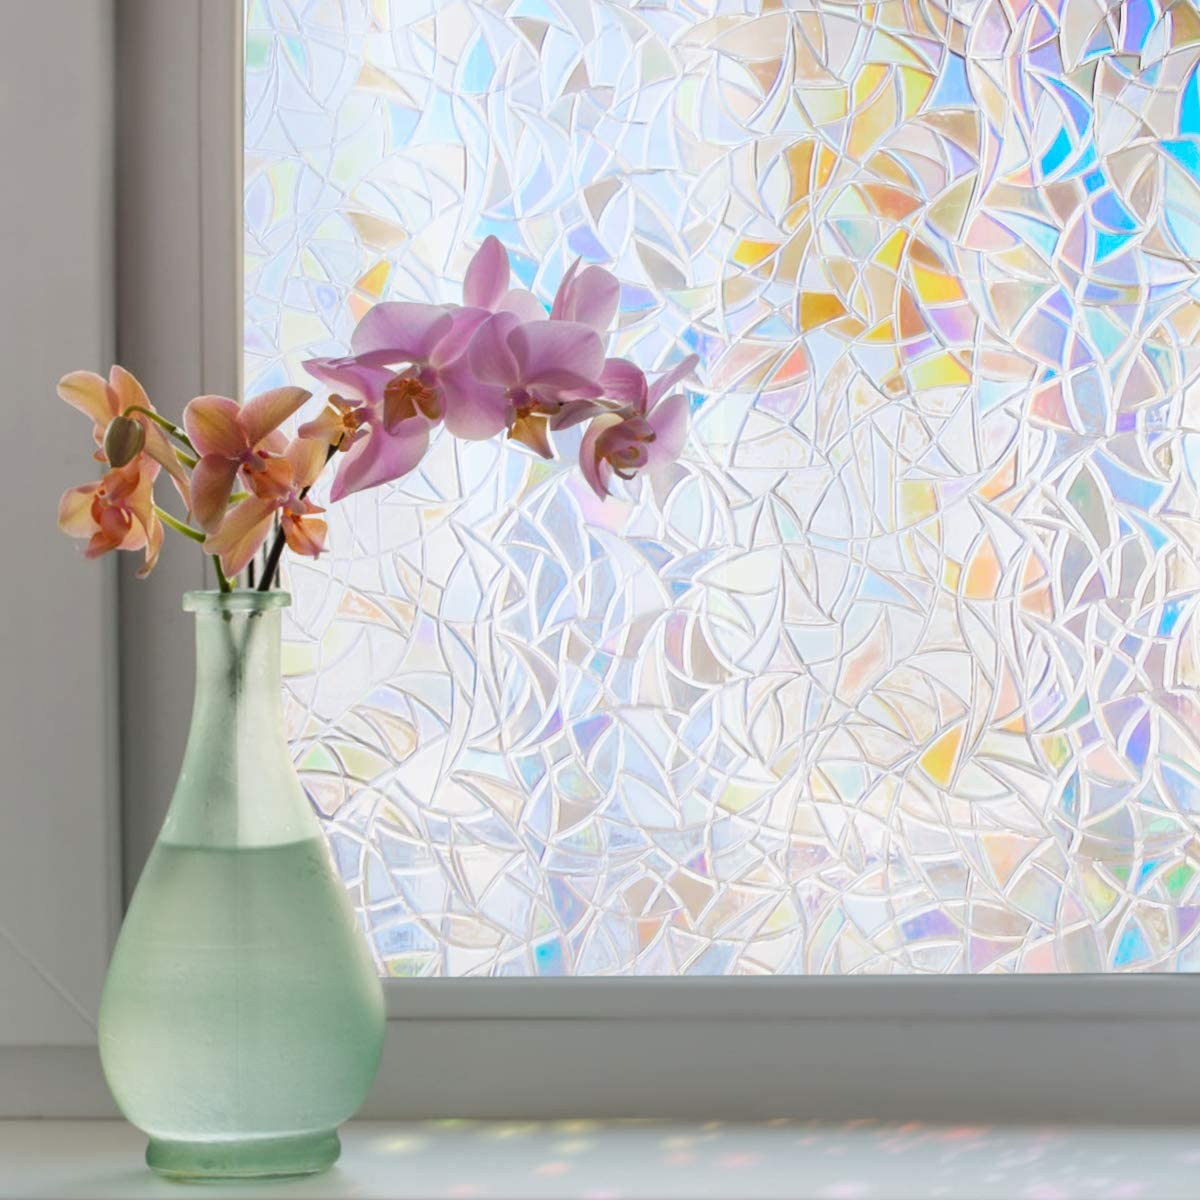 bofeifs Rainbow Window Film Static Cling Decorative Privacy Reusable Glass Film for Home, Kids Bedroom, Heat Control 17.5 x 78.7 inches